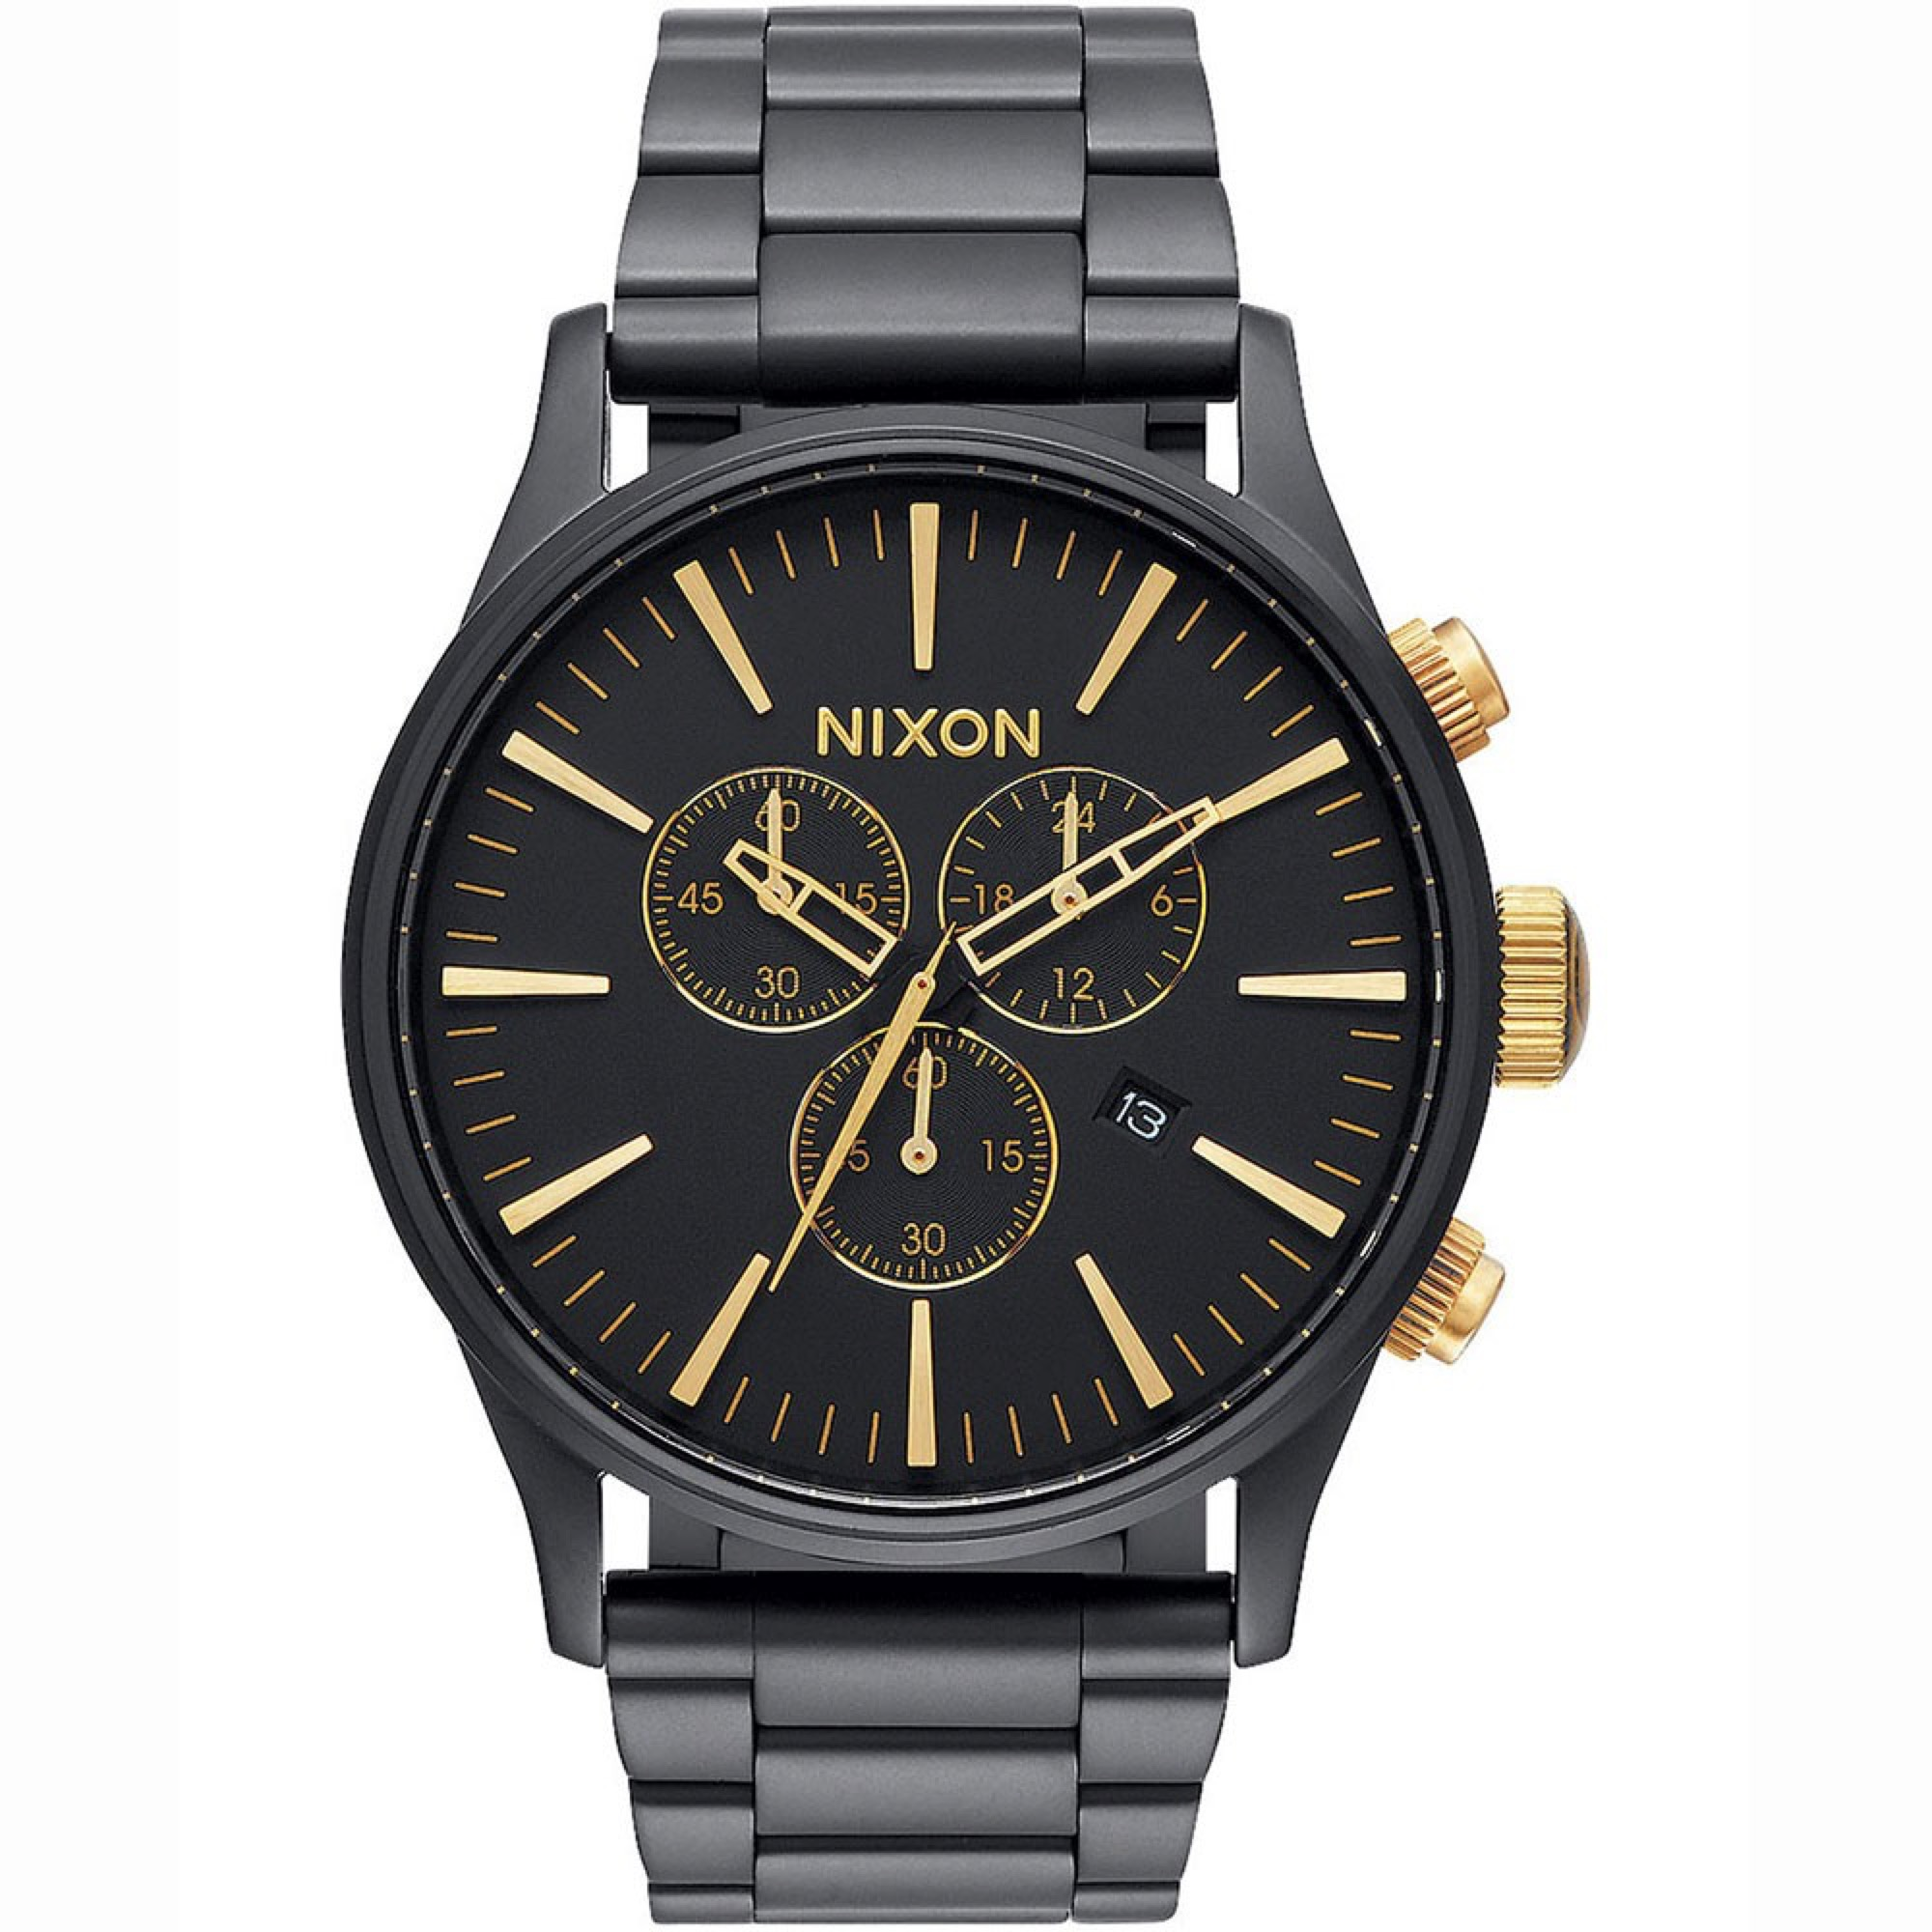 nixon-sentry-chrono-matte-black-gold-a386-1041-view1.jpg